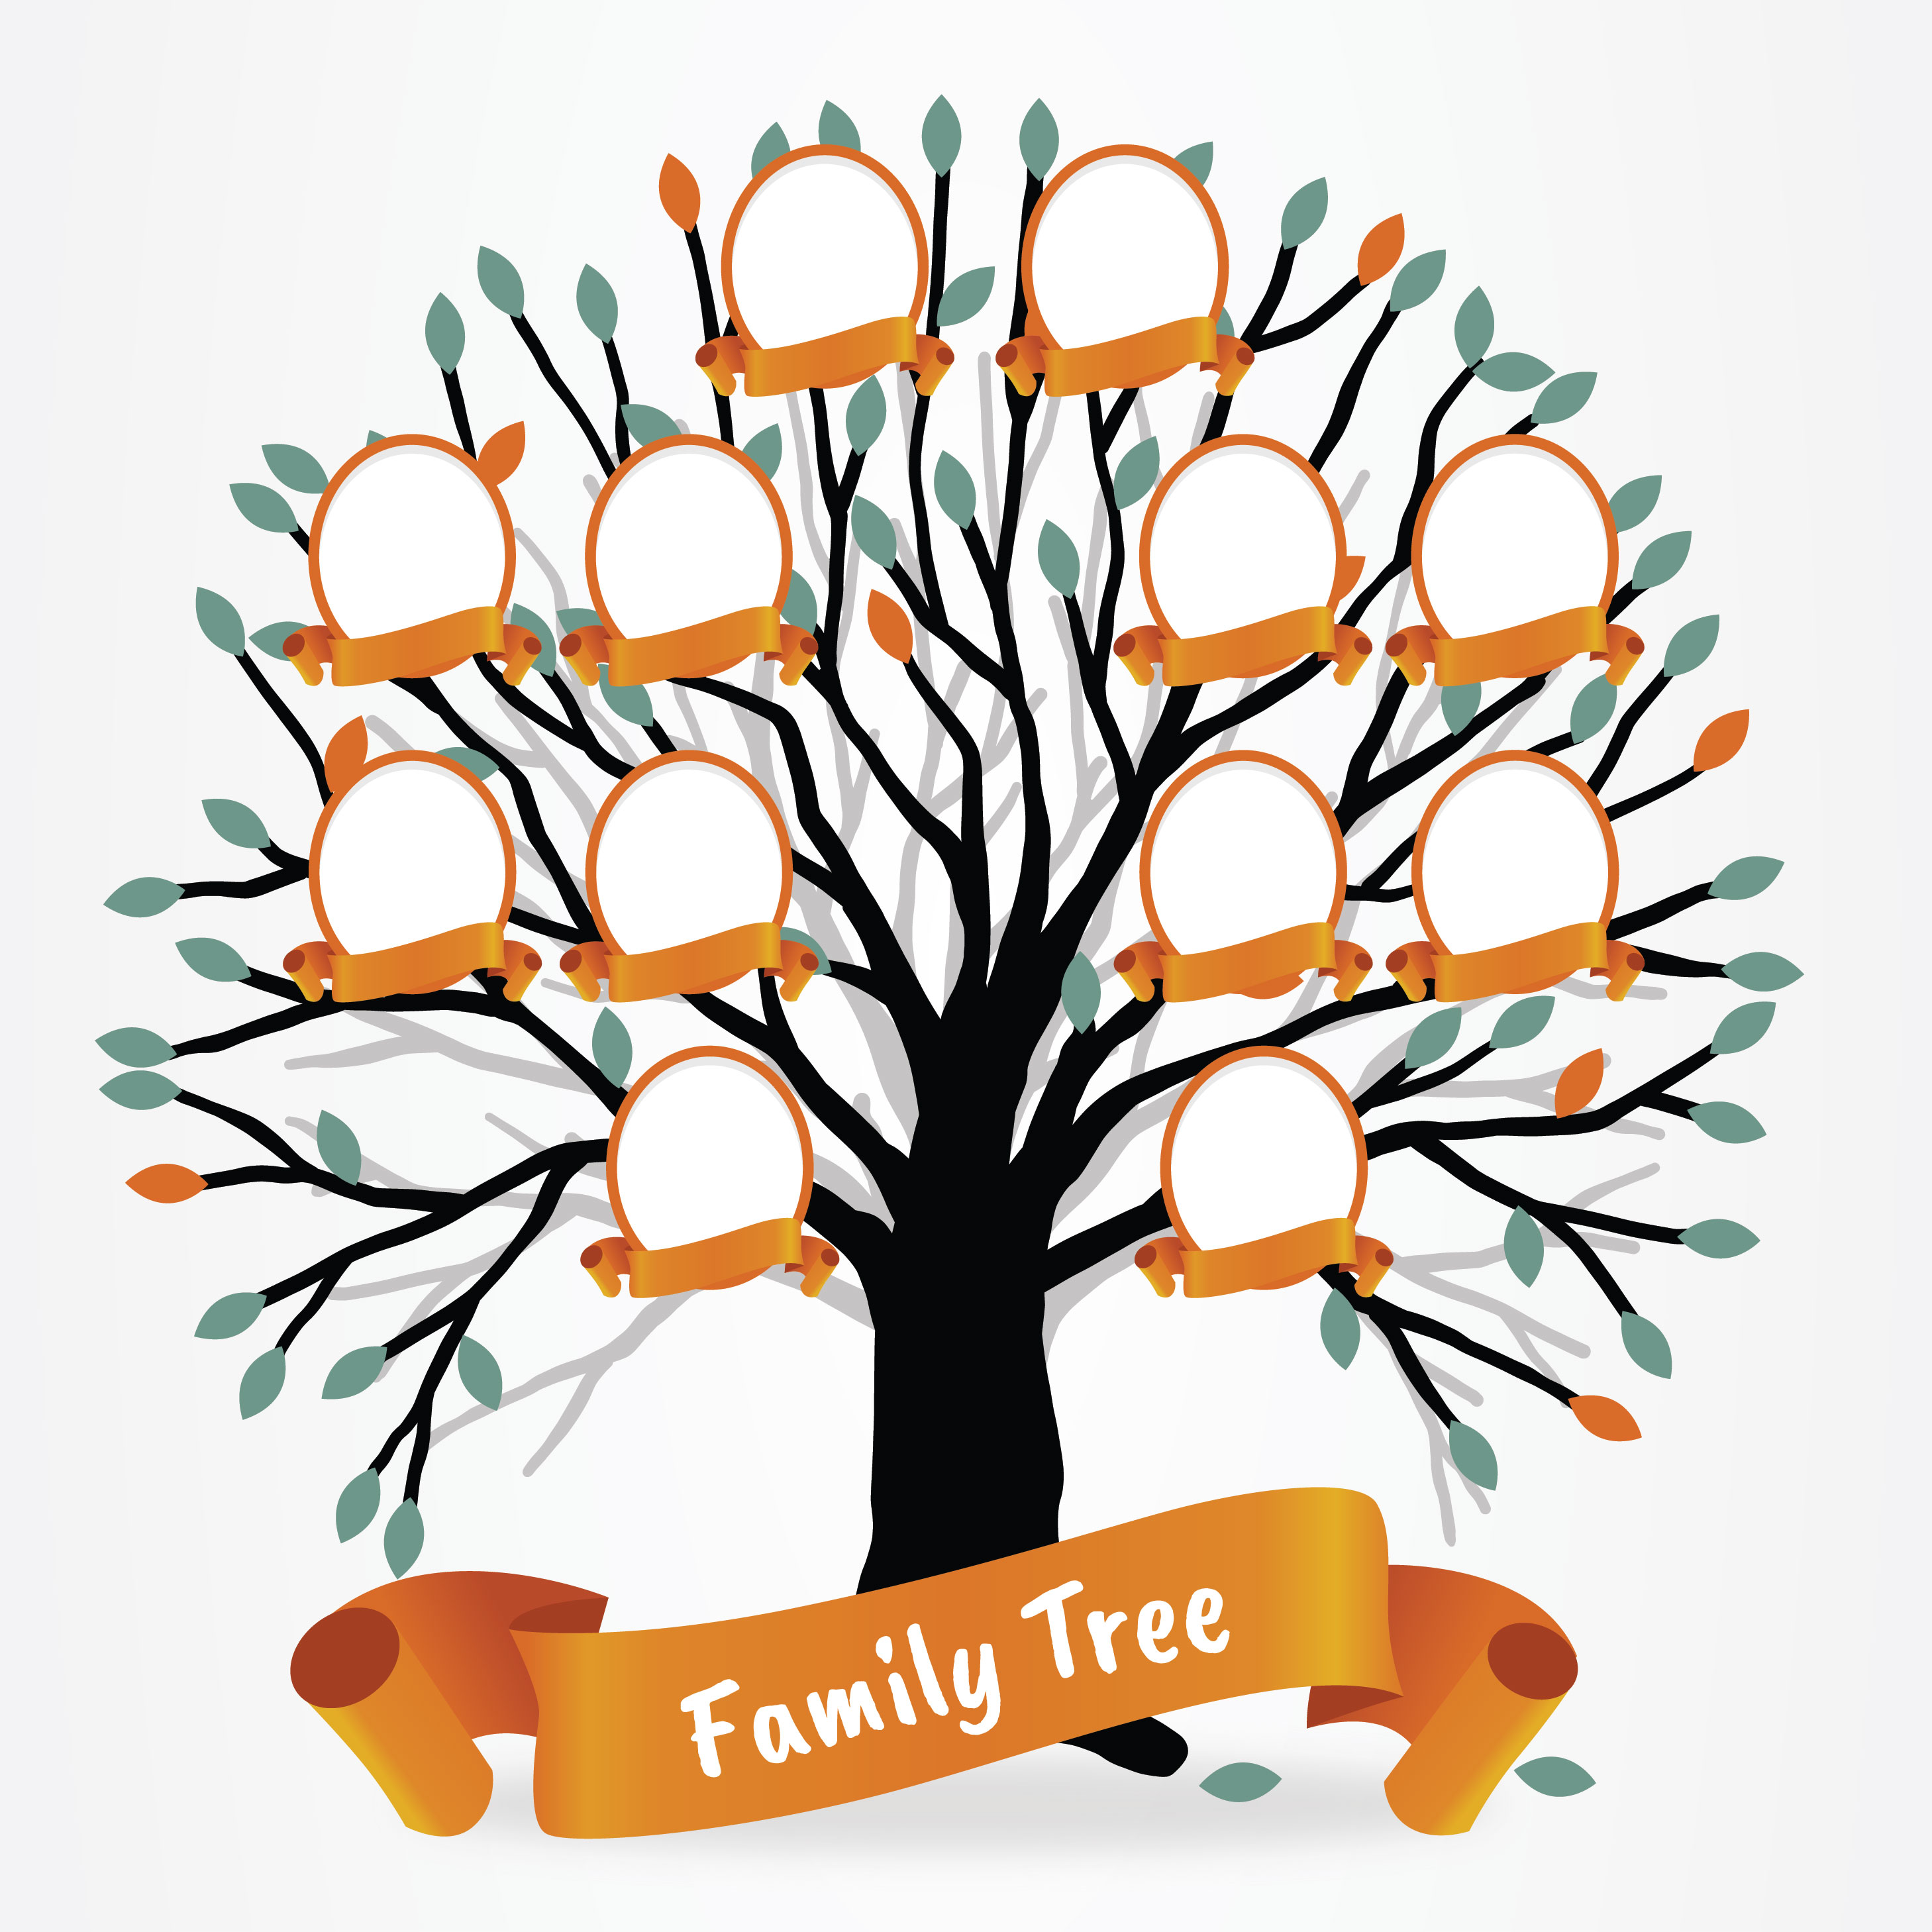 Family Tree Vector Design - Download Free Vectors, Clipart ...